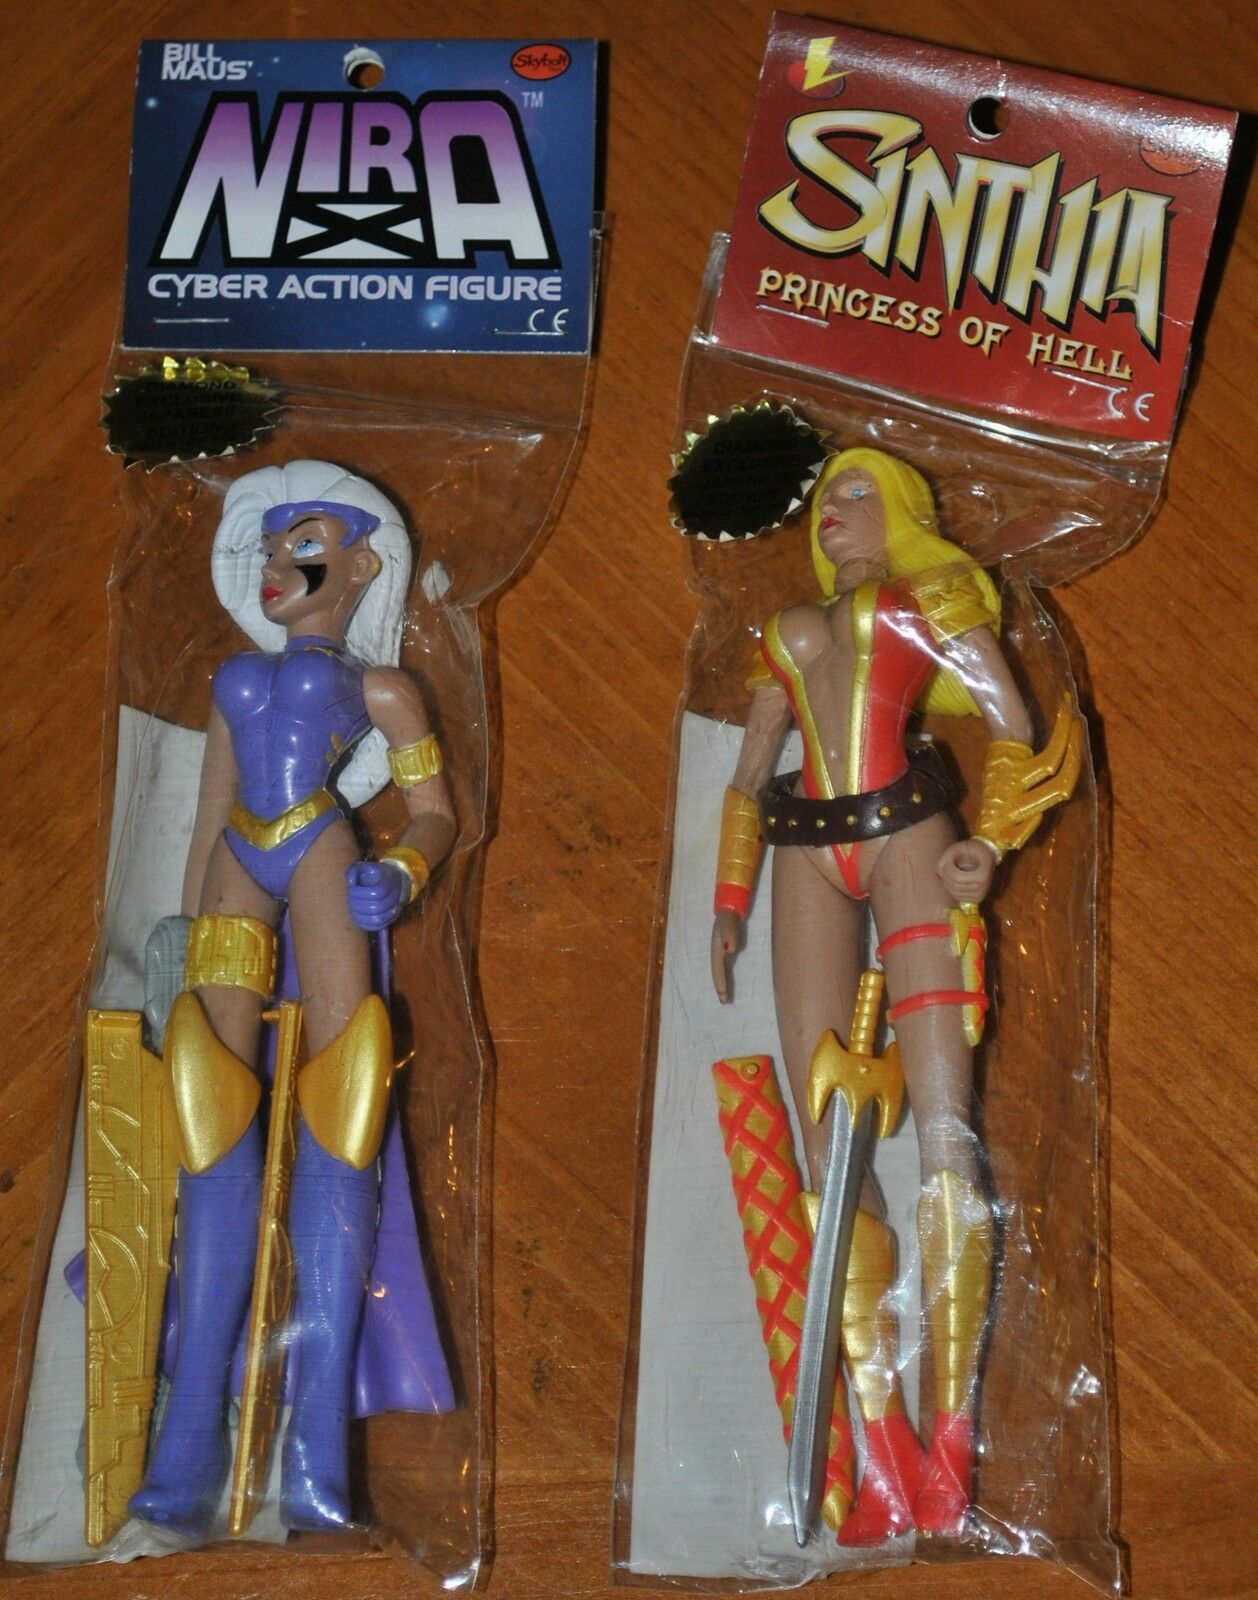 SINTHIA PRINCESS OF HELL & NIRA CYBER ACTION FIGURE JAPANESE EDITION 1000 MADE